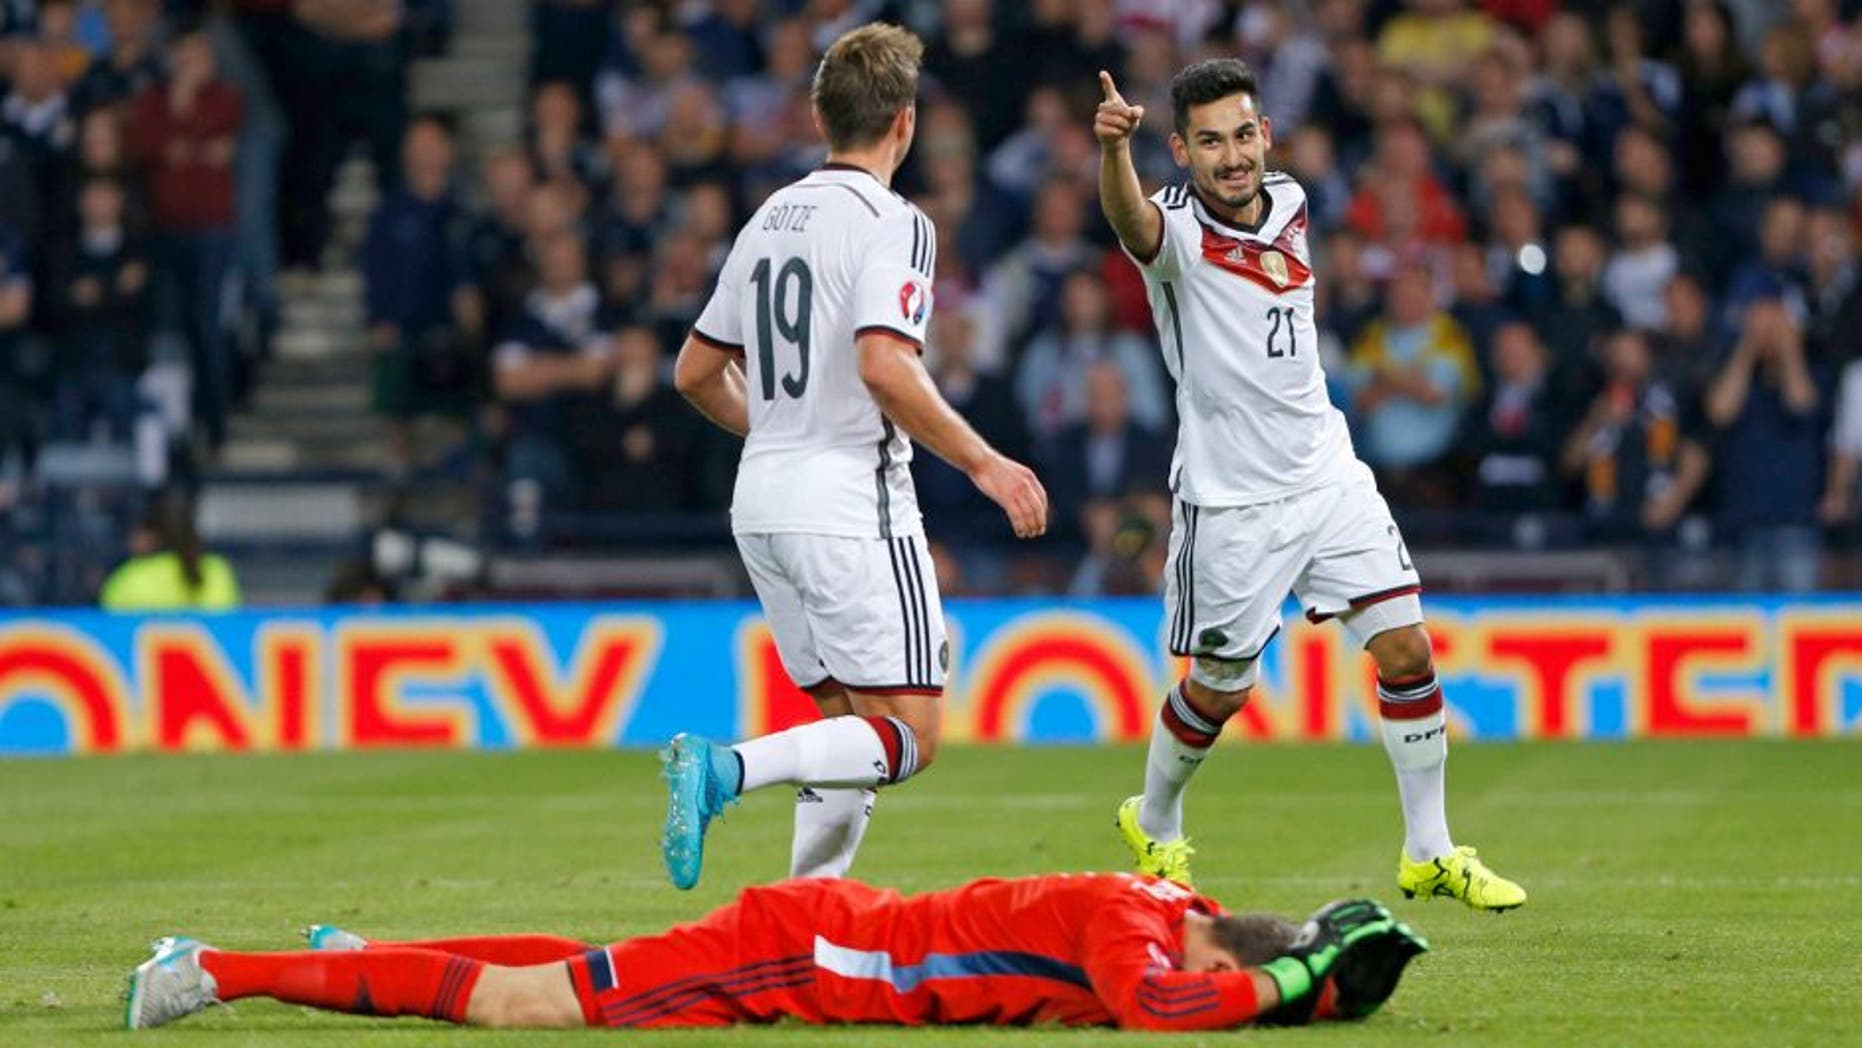 Football - Scotland v Germany - UEFA Euro 2016 Qualifying Group D - Hampden Park, Glasgow, Scotland - 7/9/15 Ilkay Gundogan celebrates with team mates after scoring the third goal for Germany as Scotland's David Marshall looks dejected Reuters / Russell Cheyne Livepic EDITORIAL USE ONLY.